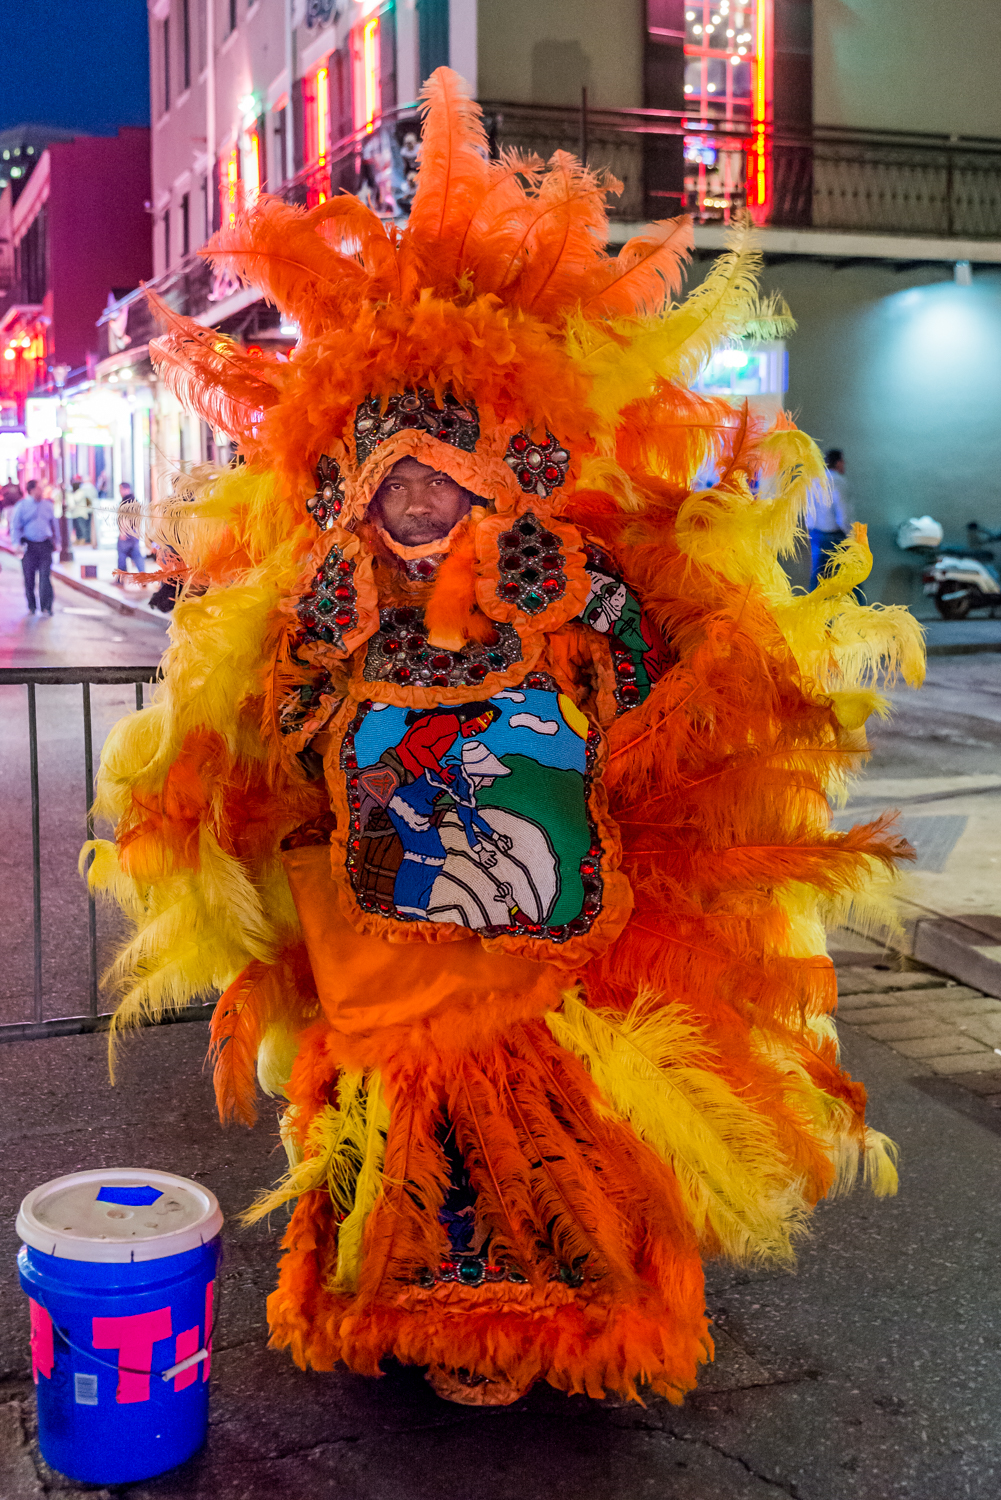 Mardi Gras Indian in All his Glory